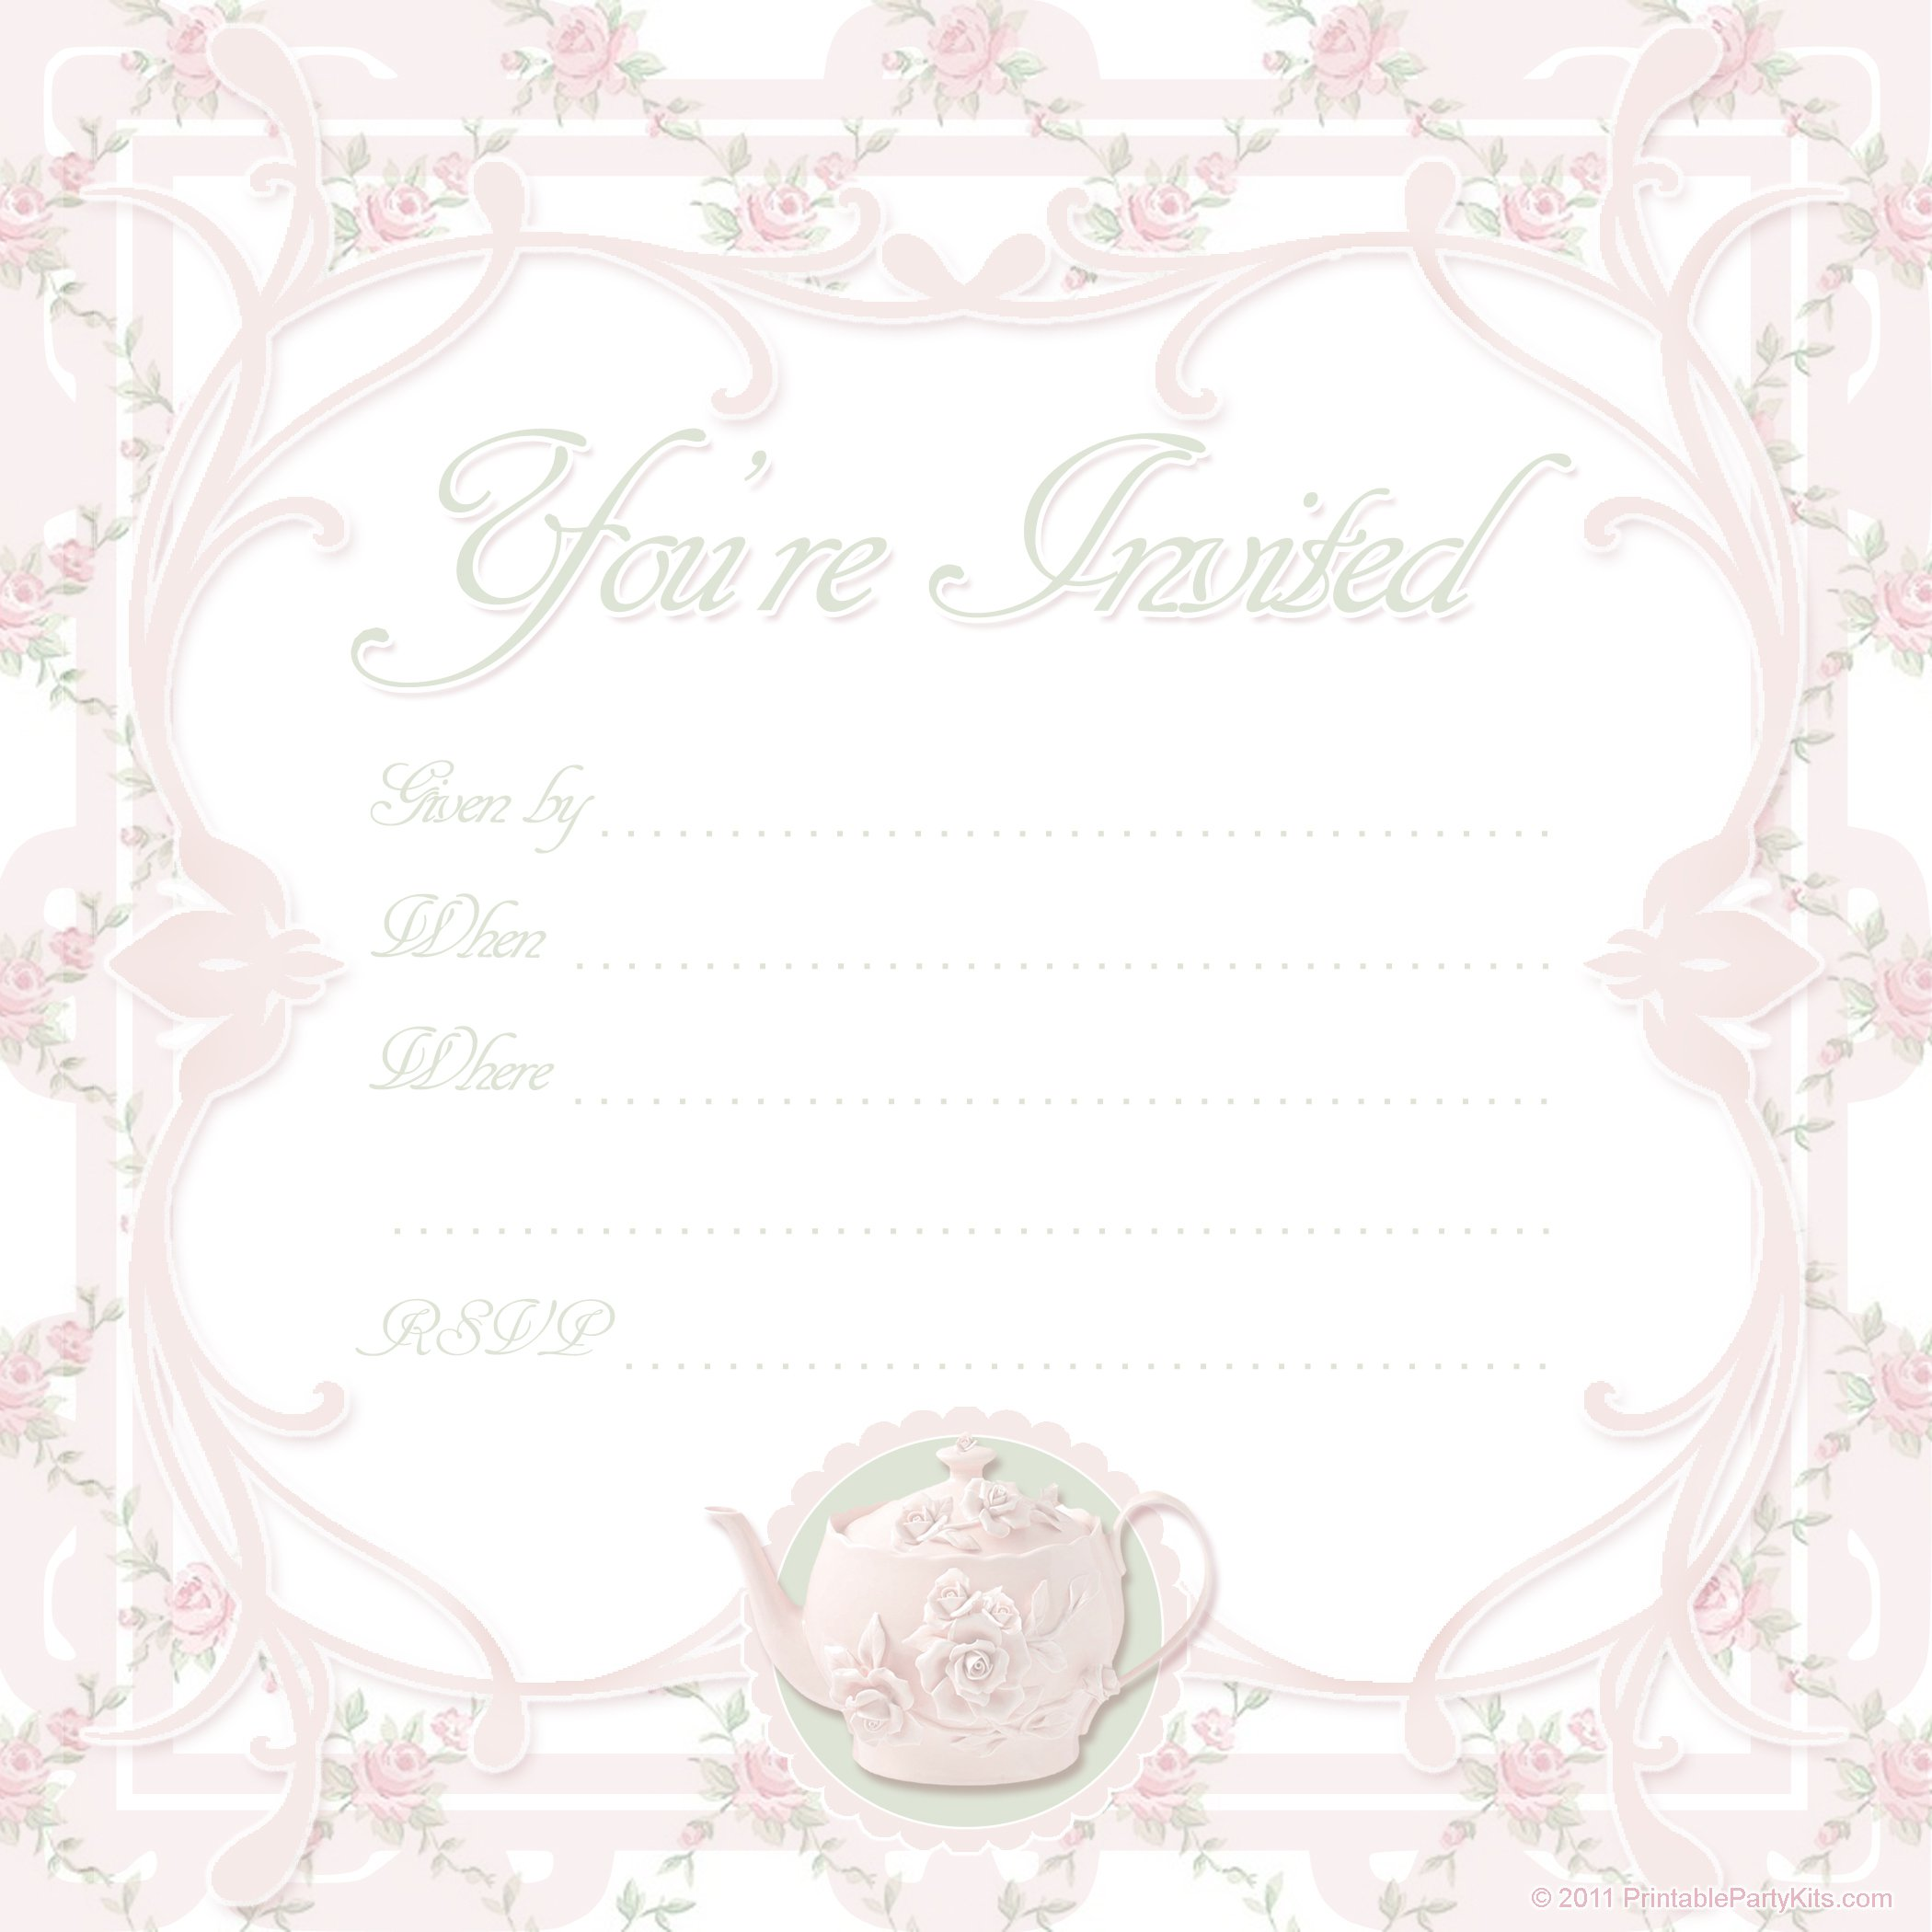 Printable Invitations For All Occasions